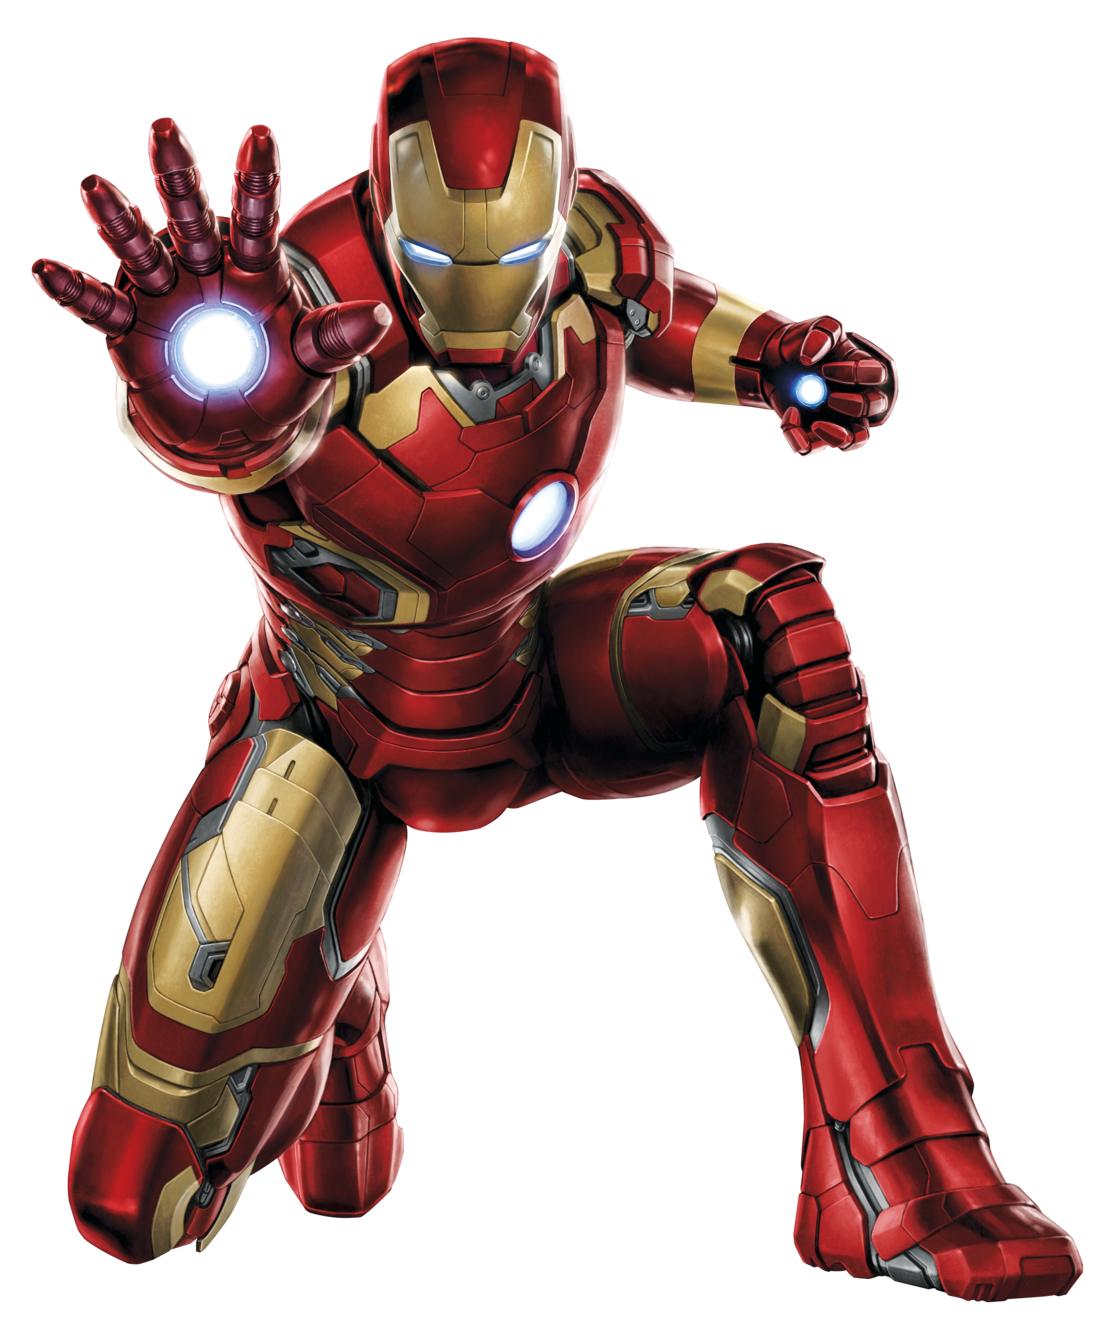 Download iron man picture hq png image freepngimg - Image de iron man ...